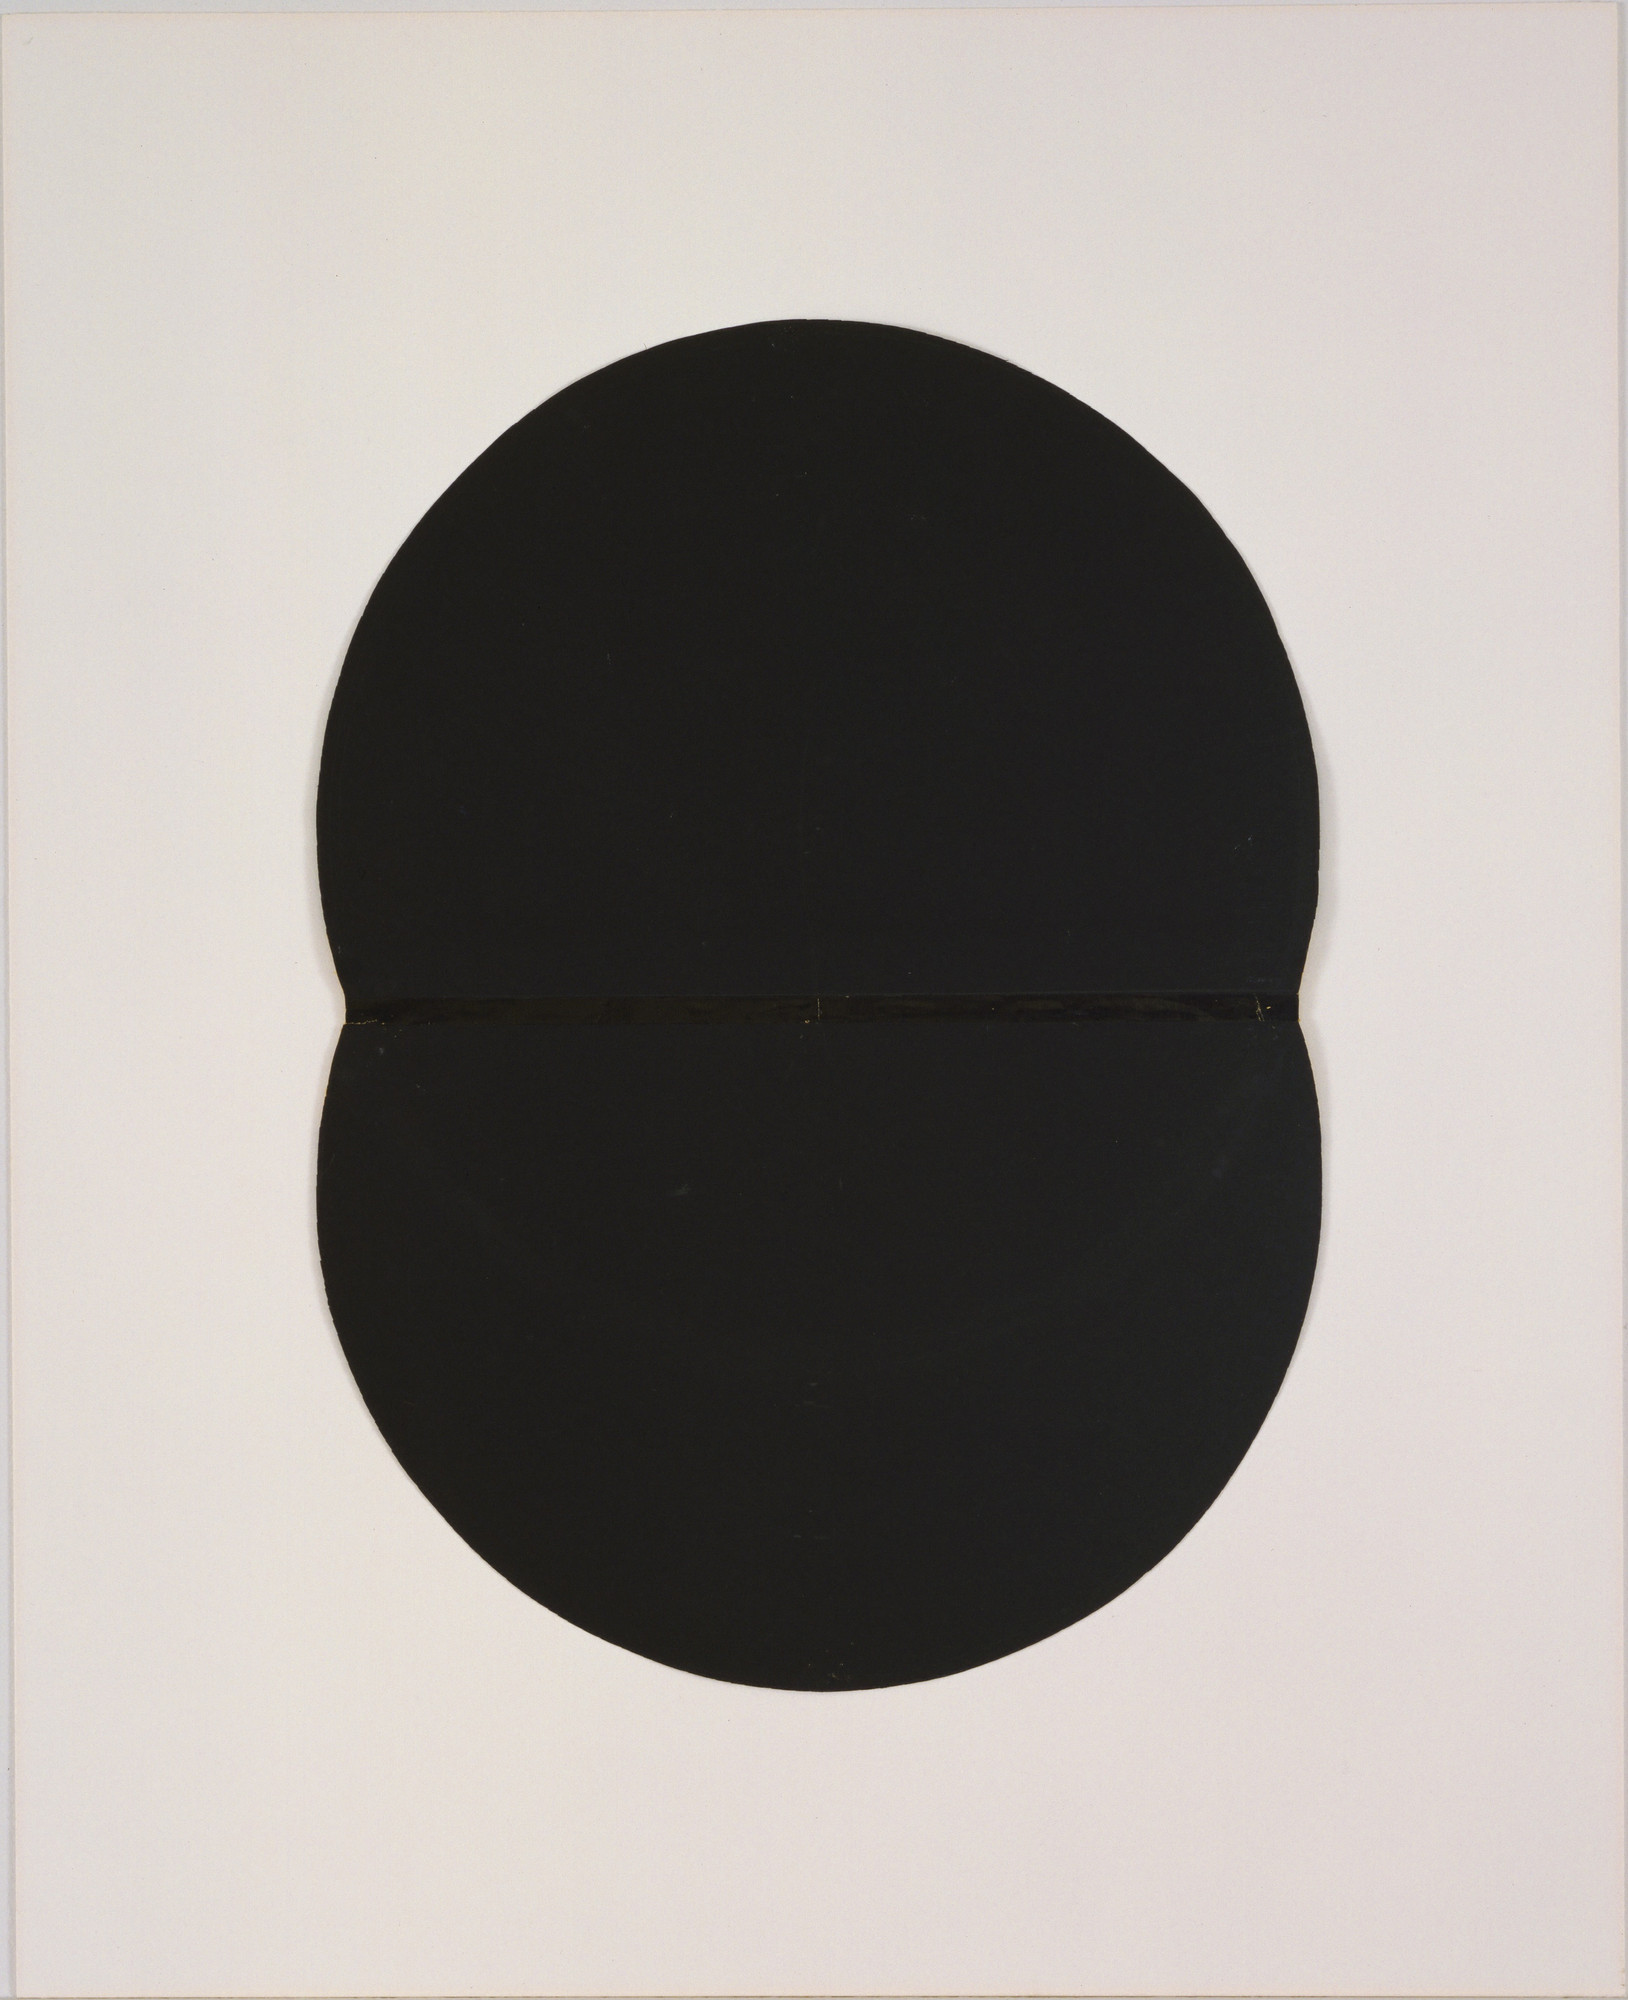 Ellsworth Kelly. Study for White Plaque: Bridge Arch and Reflection. (1951)